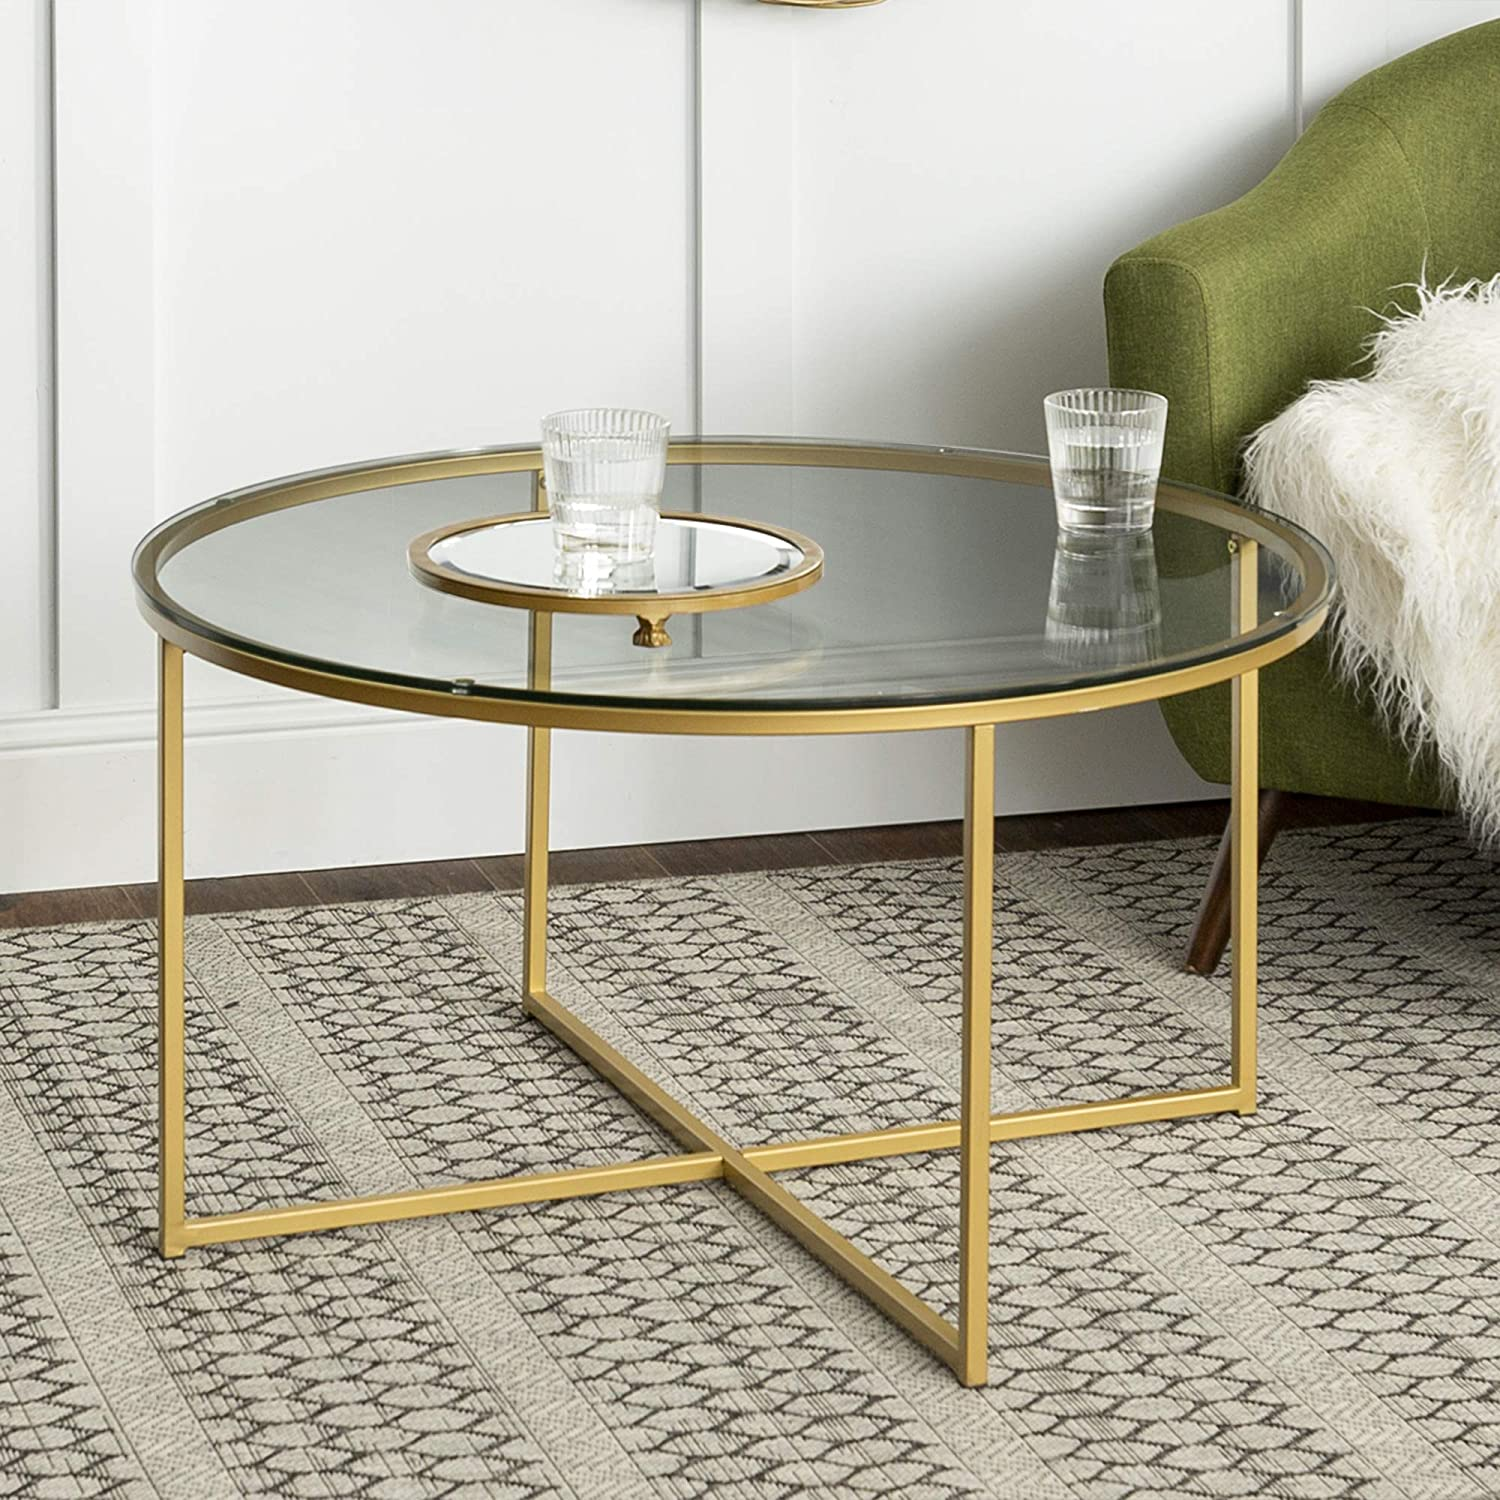 Eden Bridge Designs 91cm Round Mid Century Modern Coffee Table With X Base For Living Room Office Decoration Metal Glass Gold 91x91x48 Cm Amazon Co Uk Kitchen Home